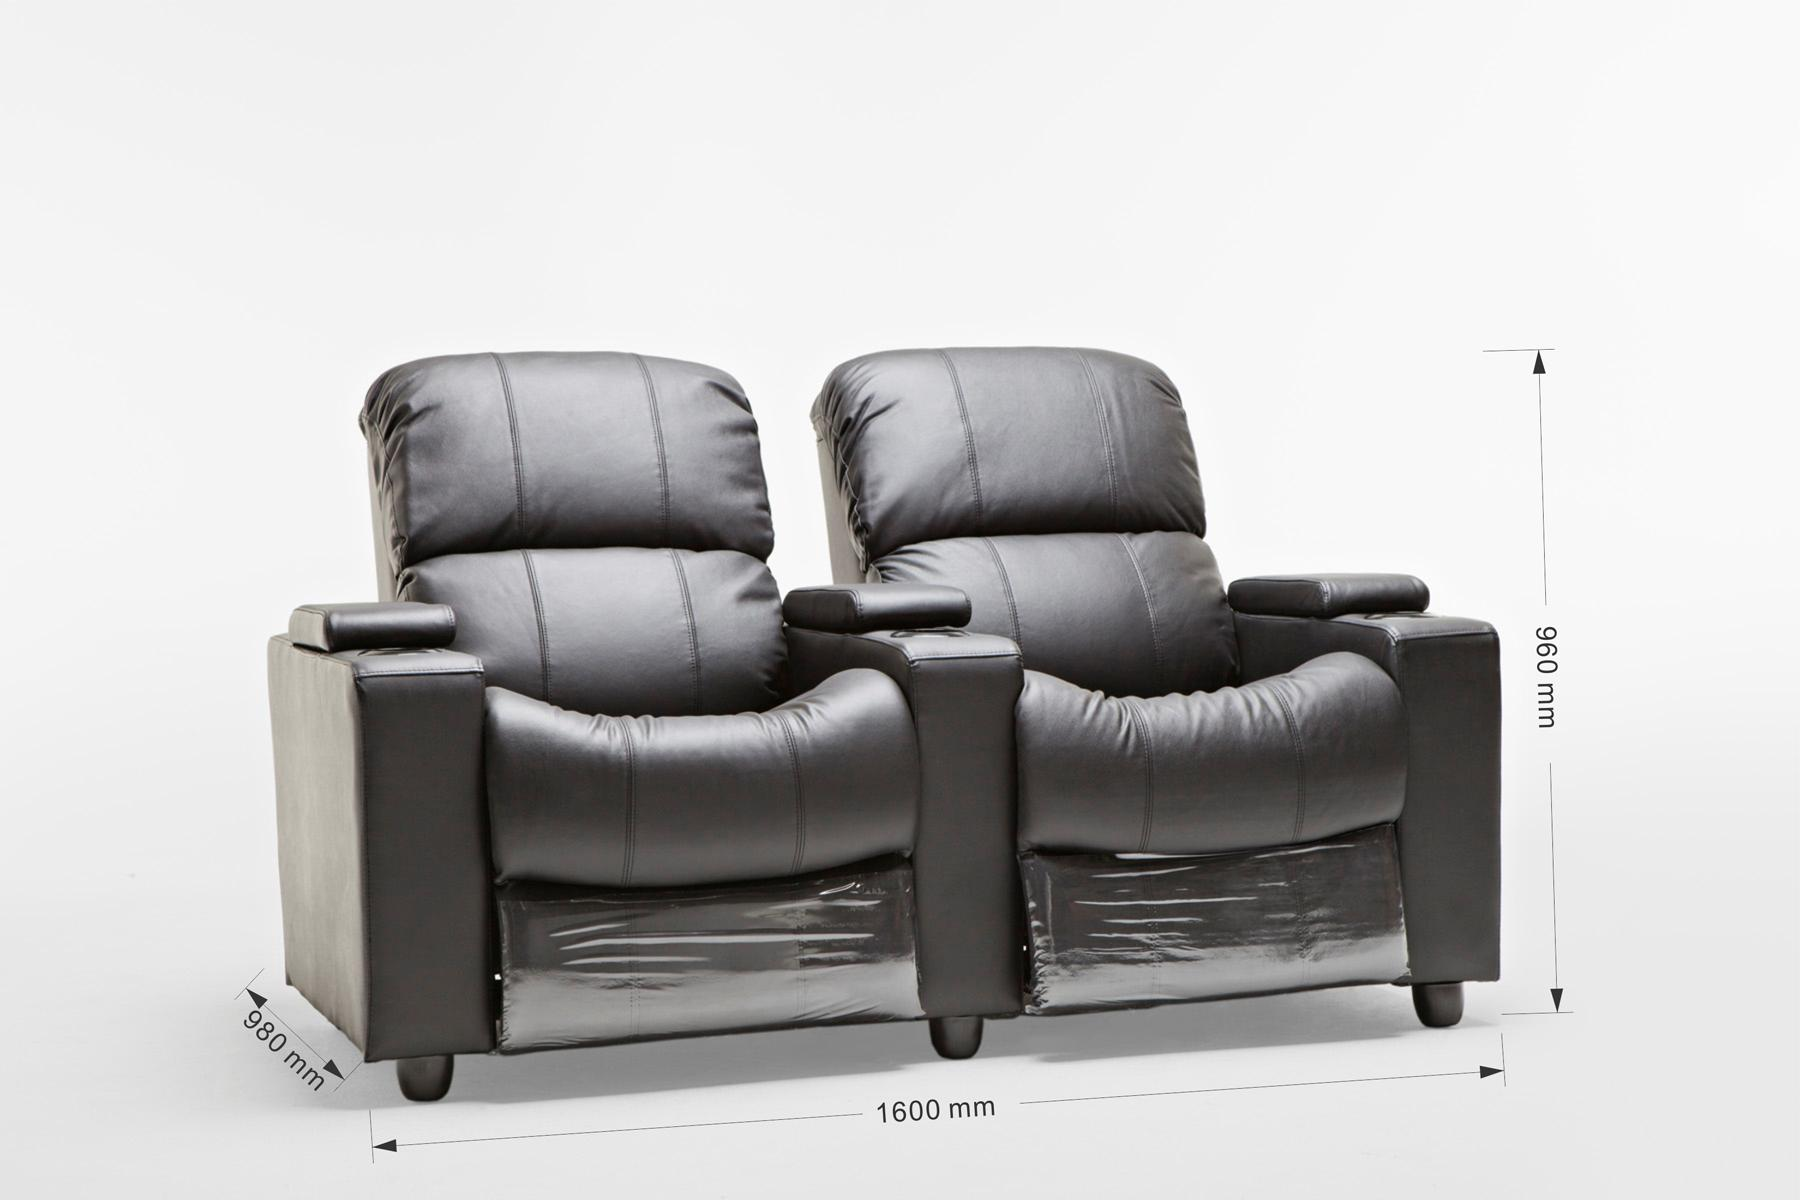 plus custom home reclinerplus furniture recliners leather recliner product sports theater